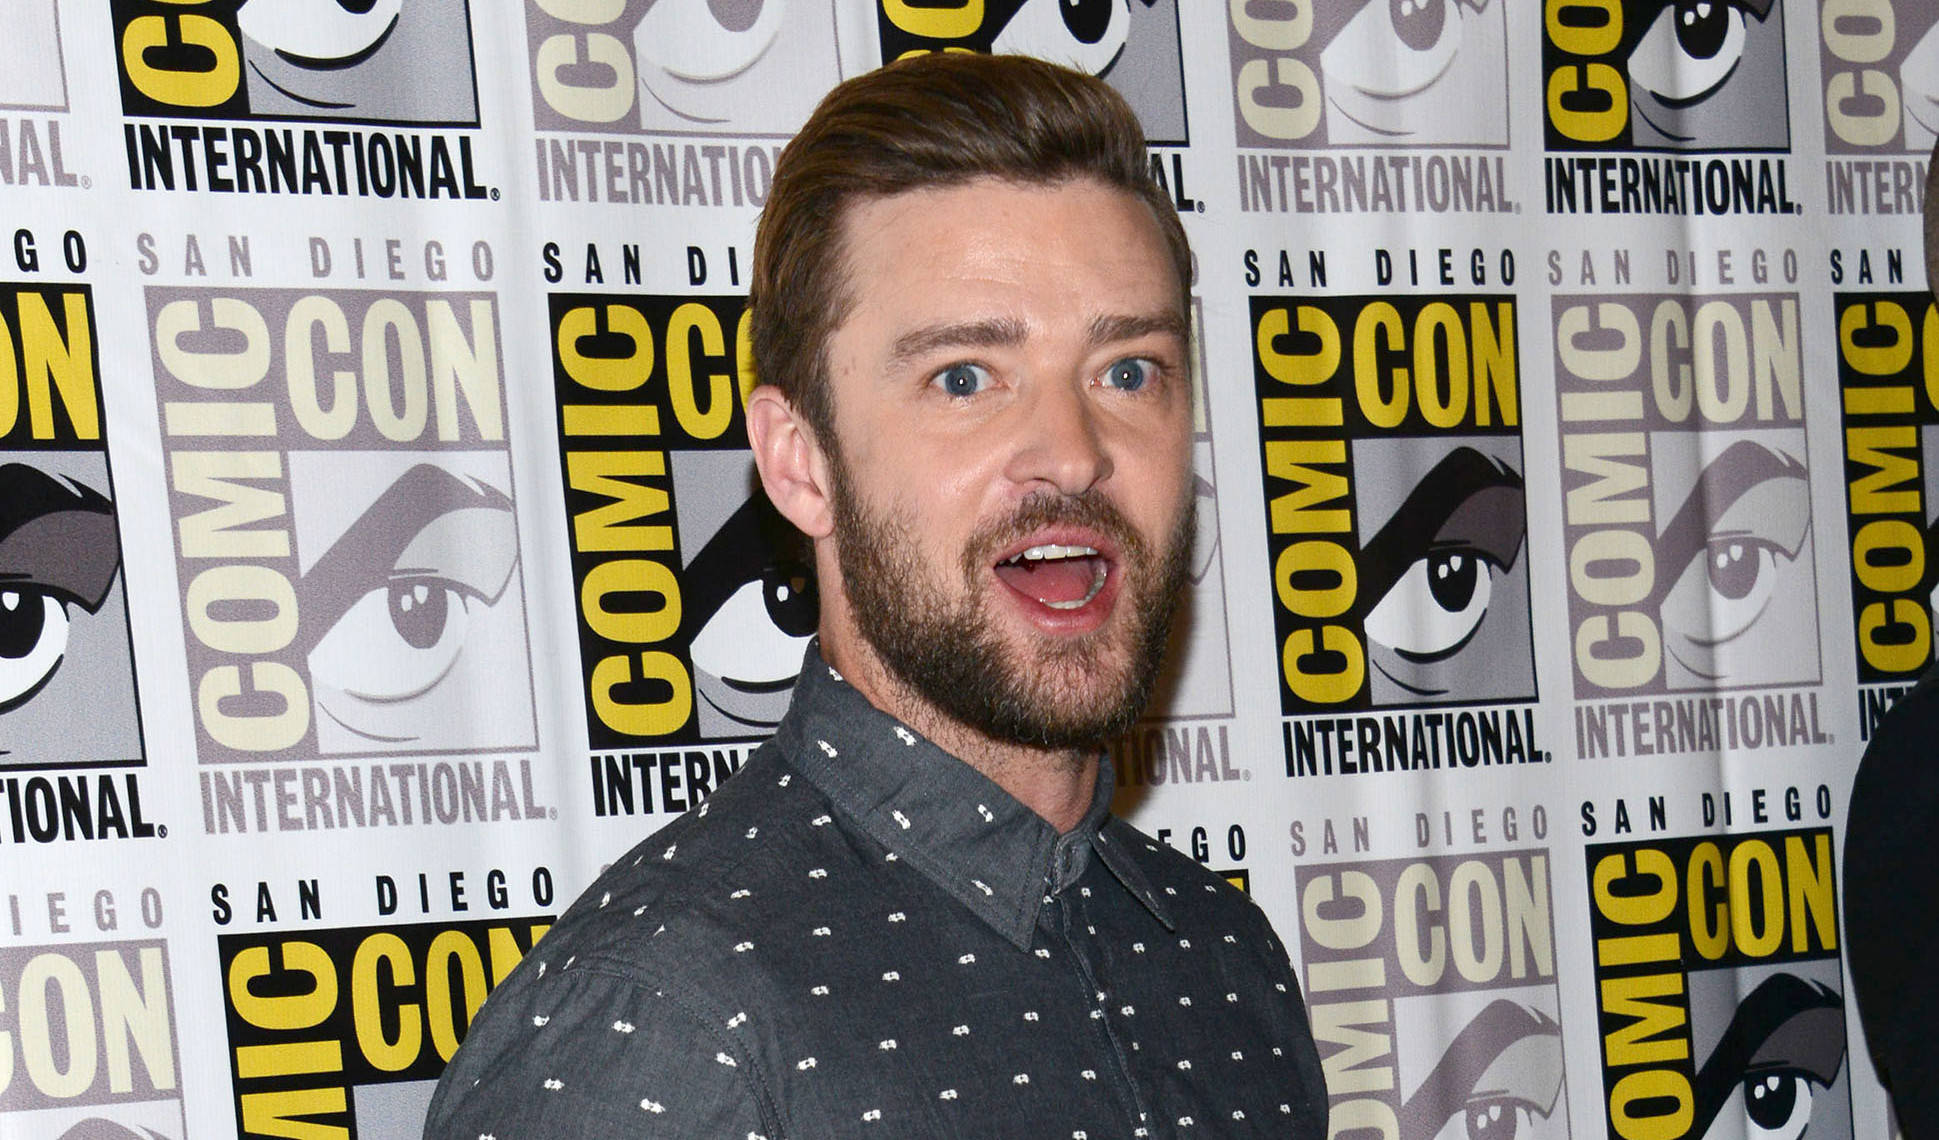 Dylan Farrow Drags Justin Timberlake For Hypocritical Support Of Time's Up